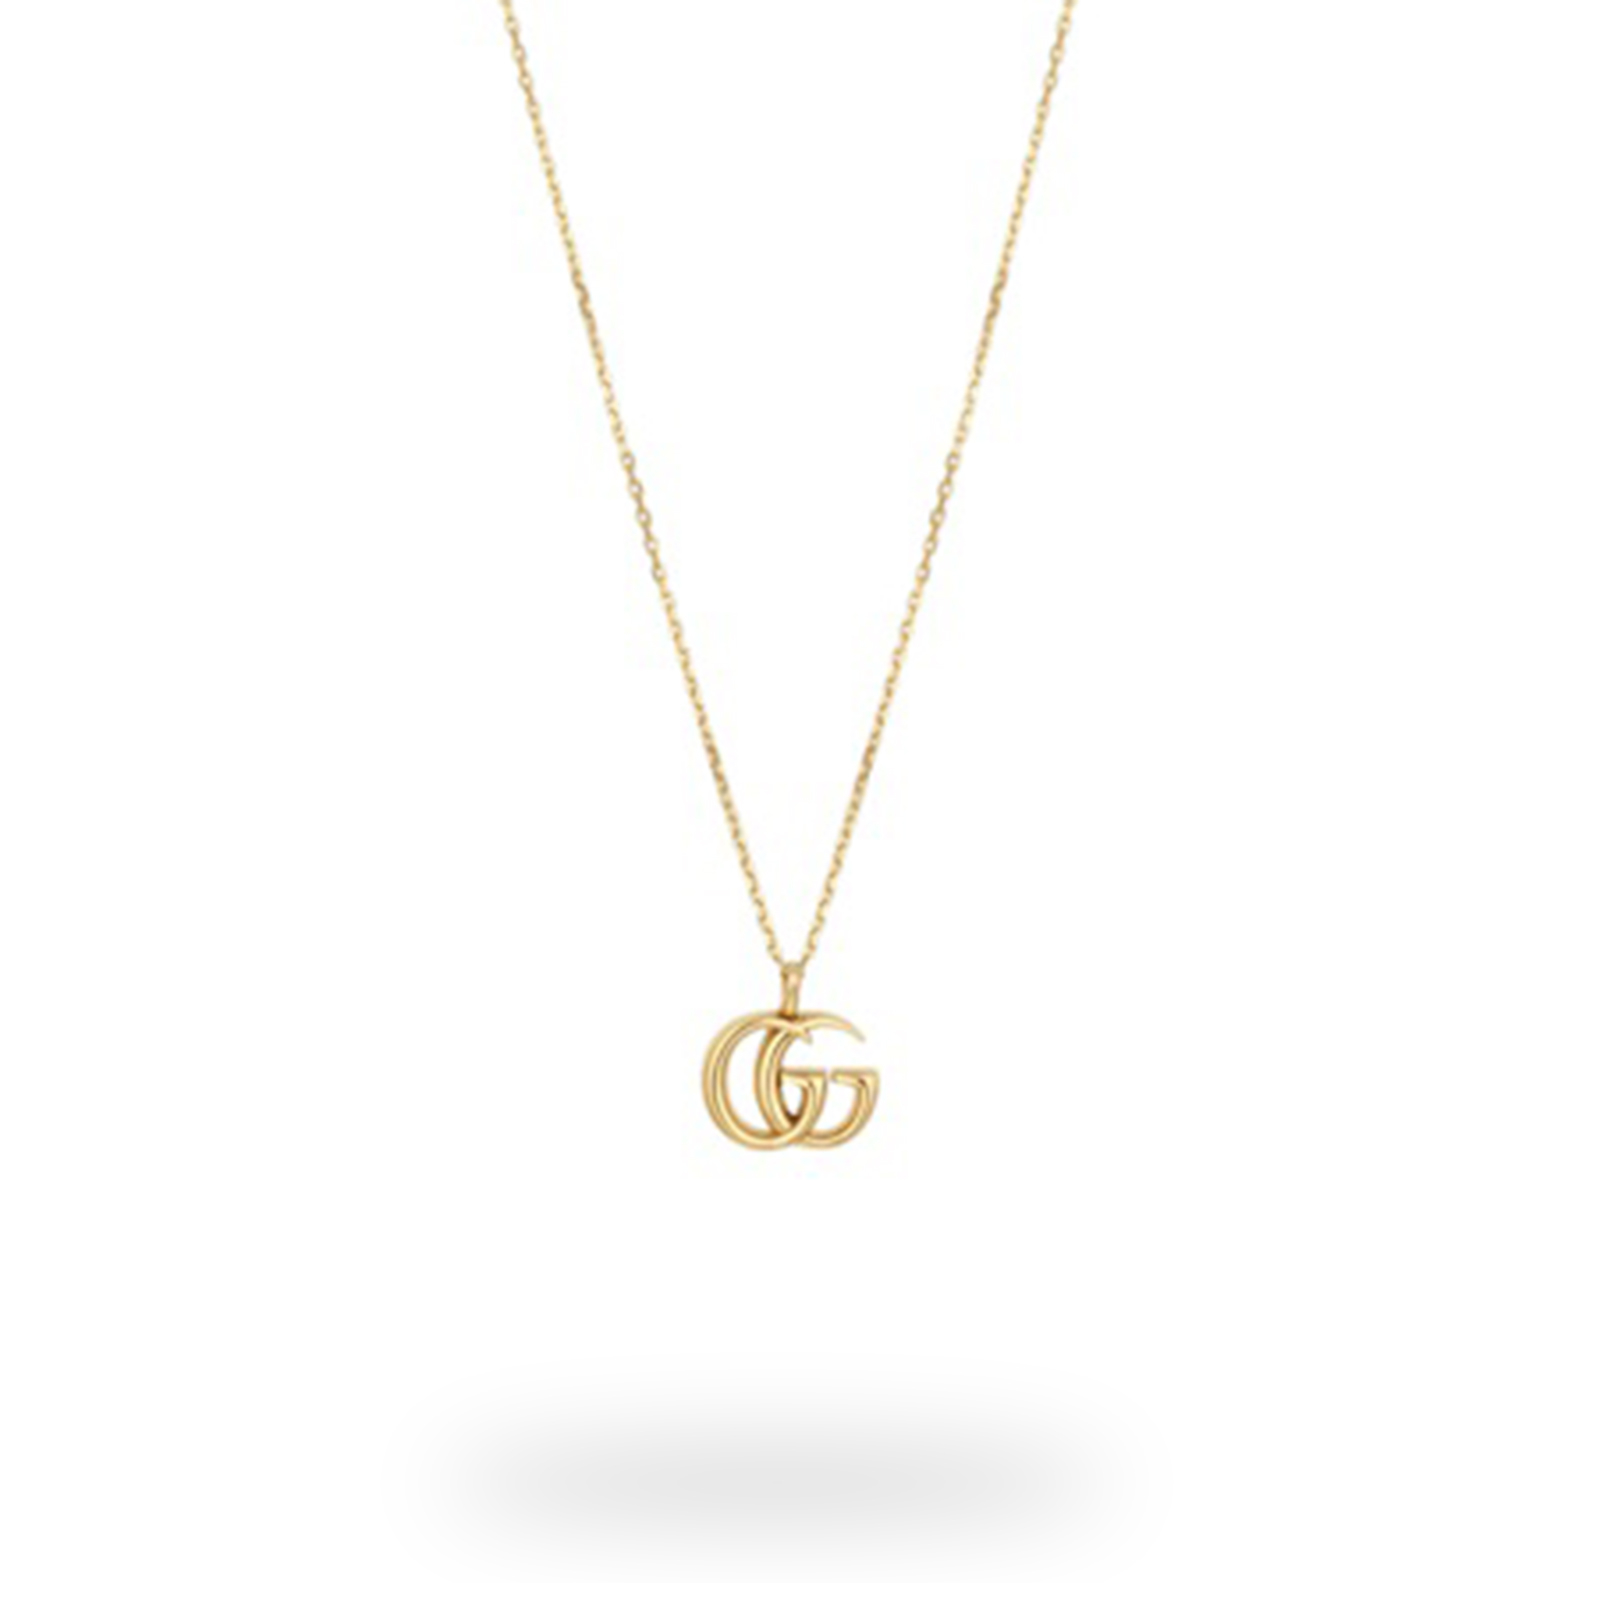 Gucci Large Double G 18ct Yellow Gold Necklace.